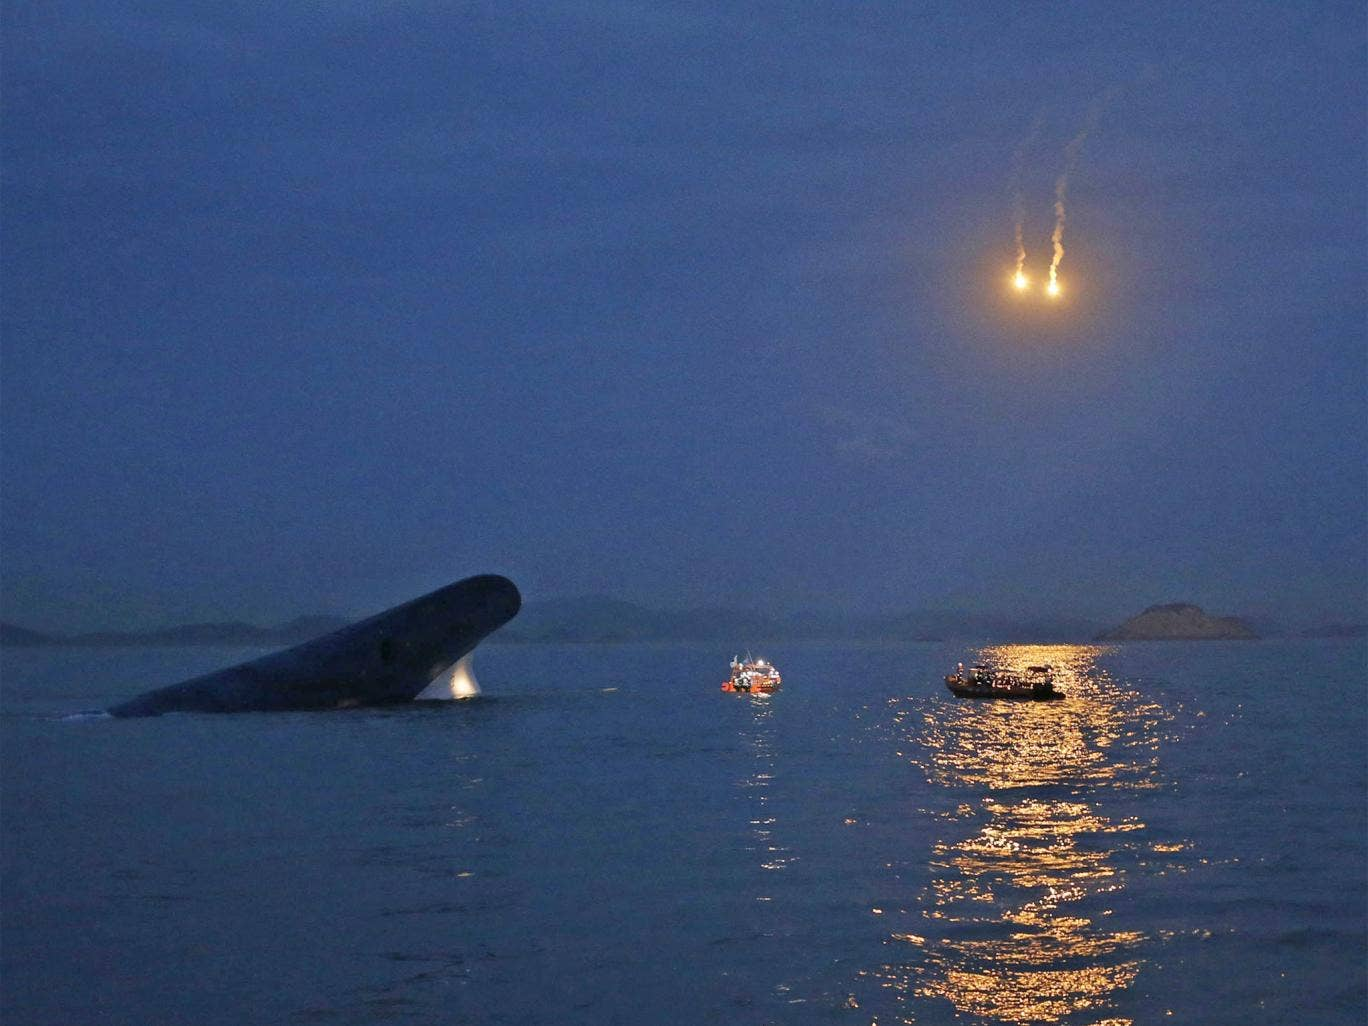 South Korean ferry 'Sewol' is seen sinking at the sea off Jindo, as lighting flares are released for a night search